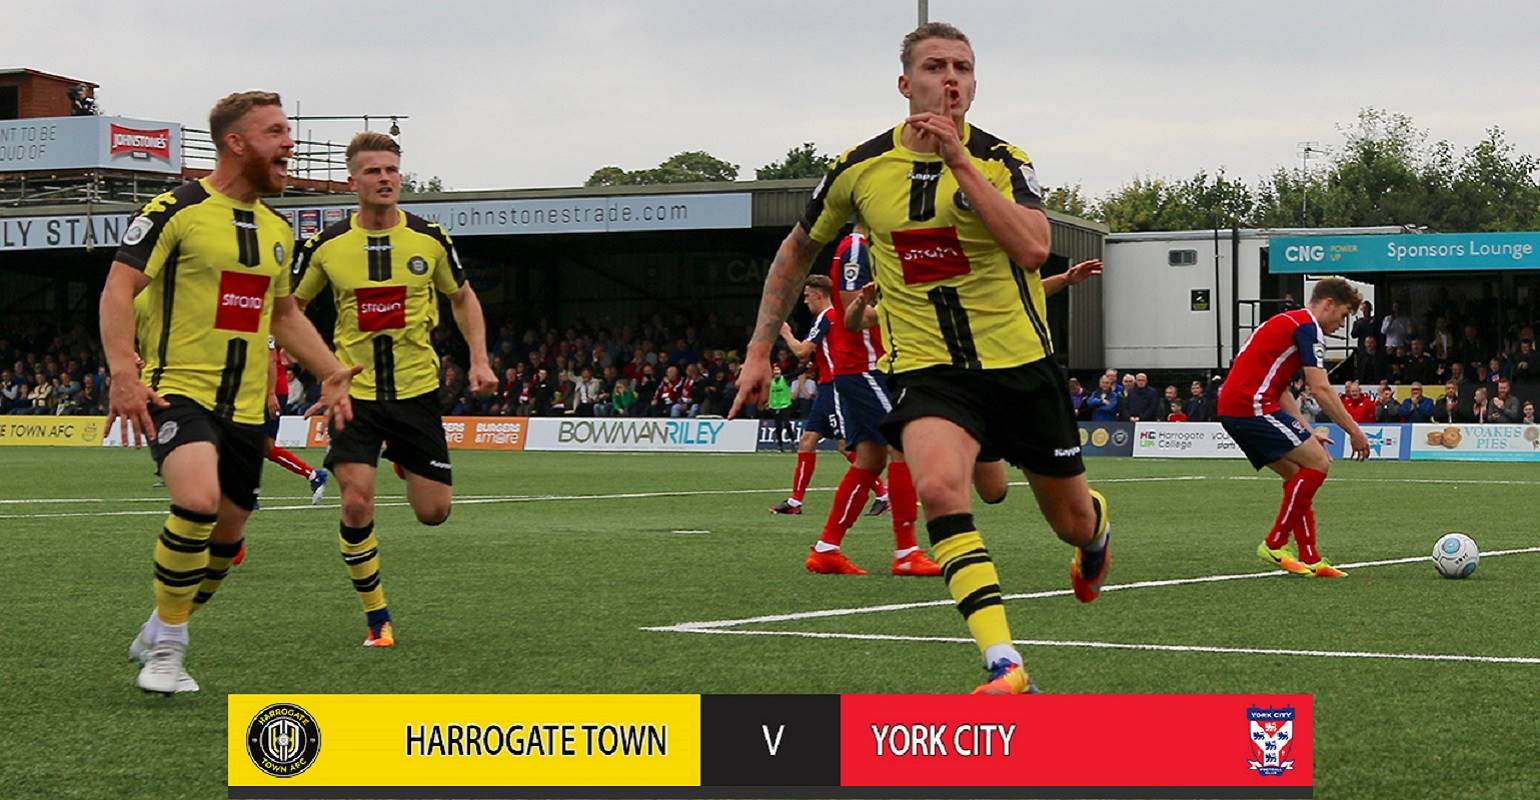 HIGHLIGHTS | Town 2 York City 0